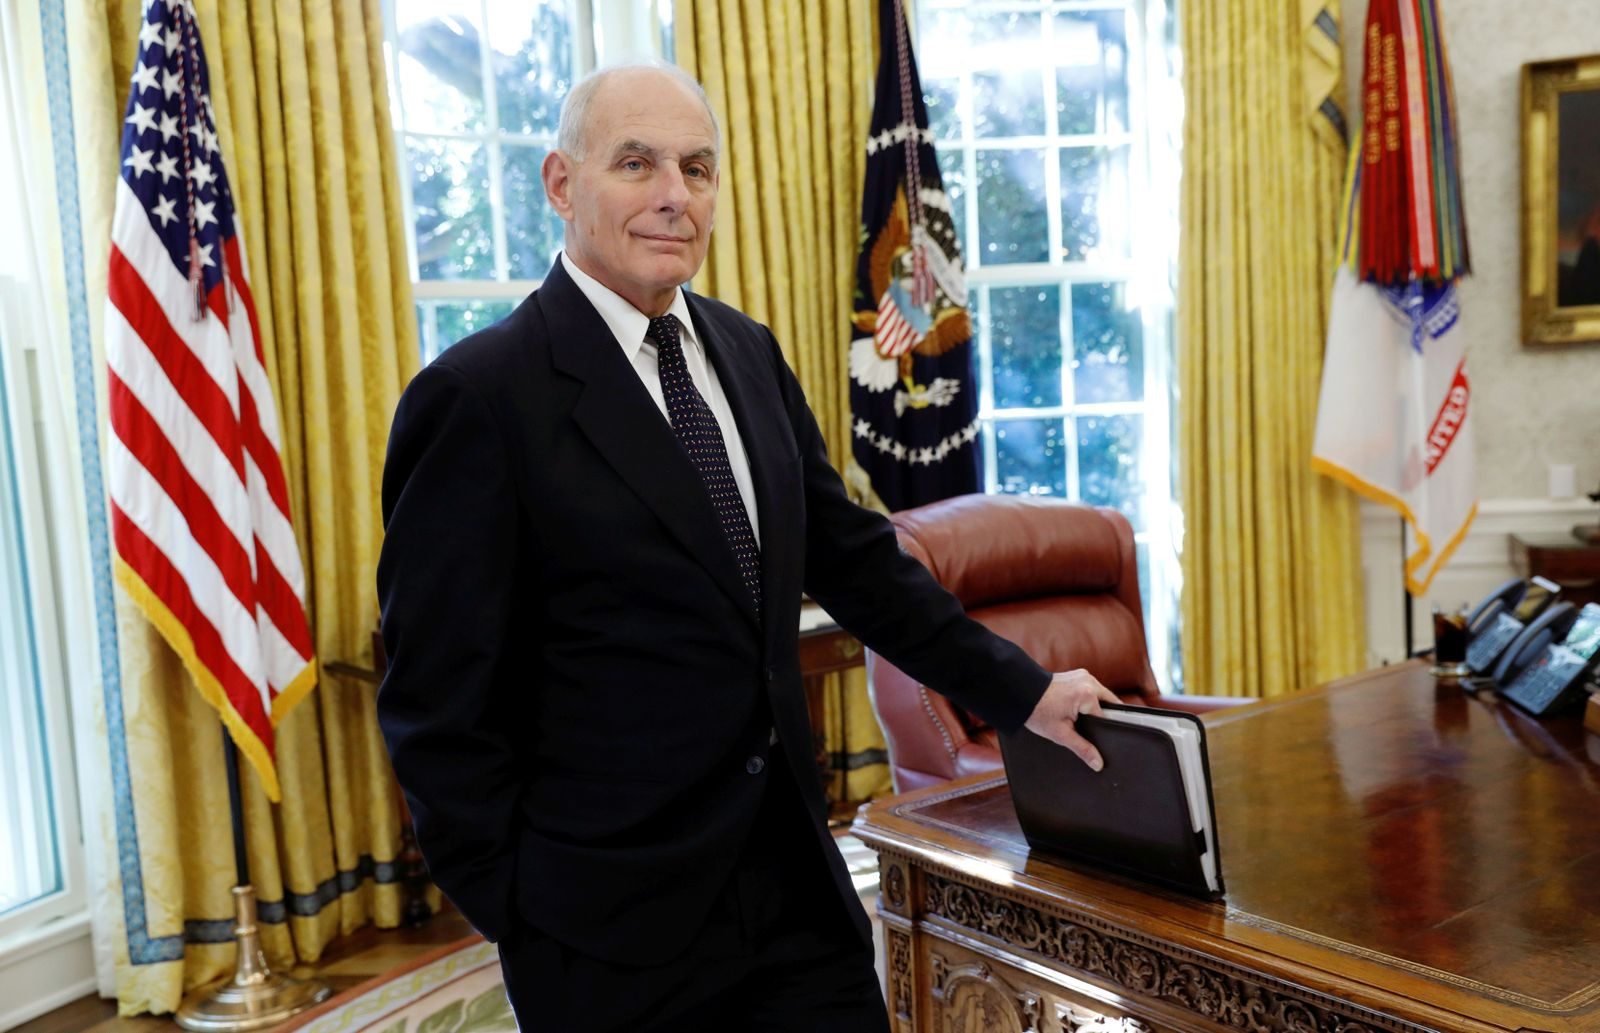 John Kelly/ Oval Office/ Trump